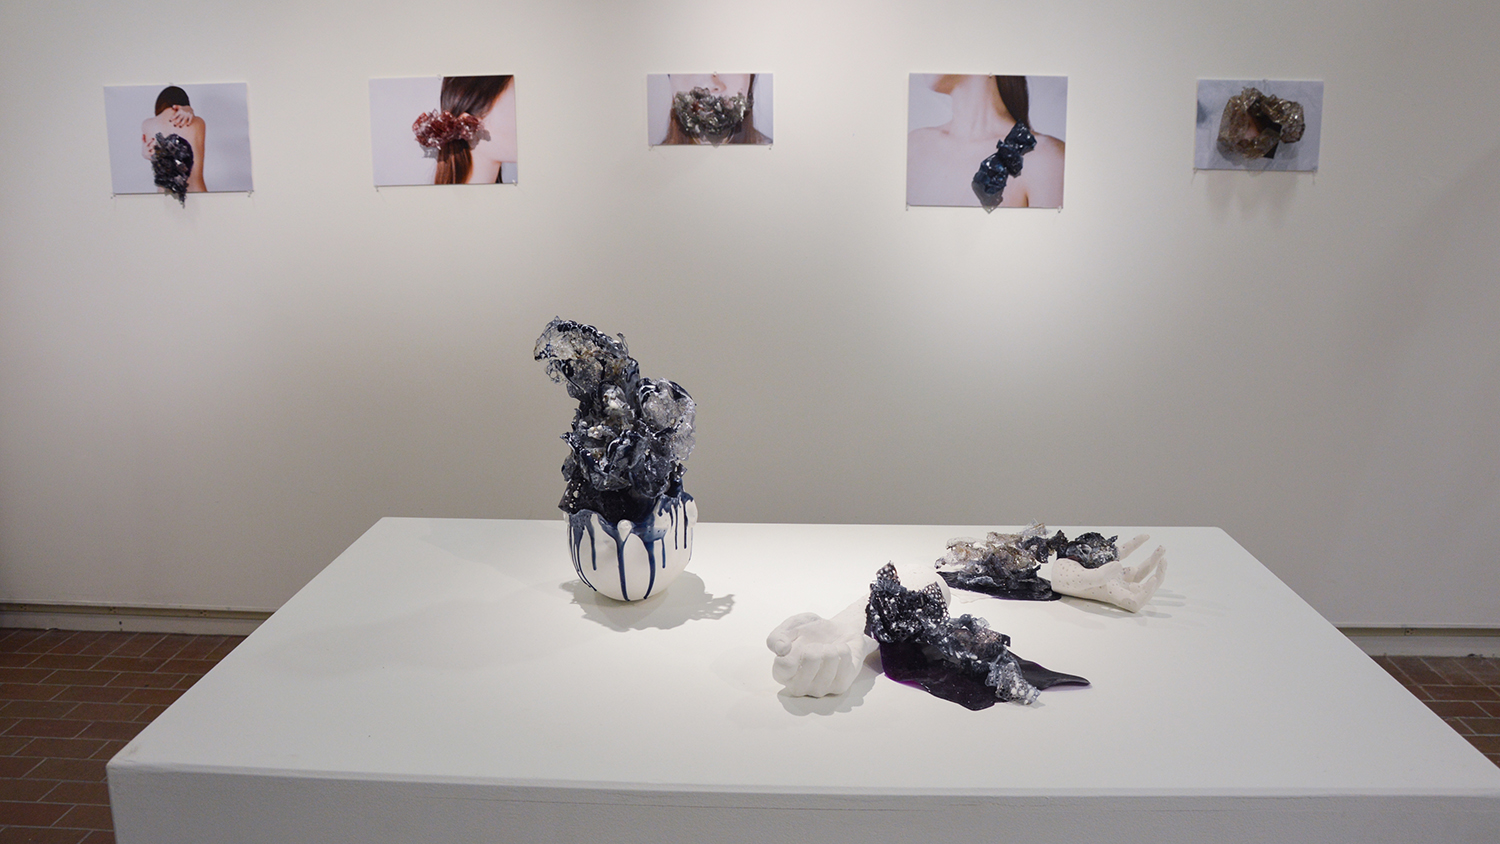 A gallery view of small sculptures and photos of various designs.